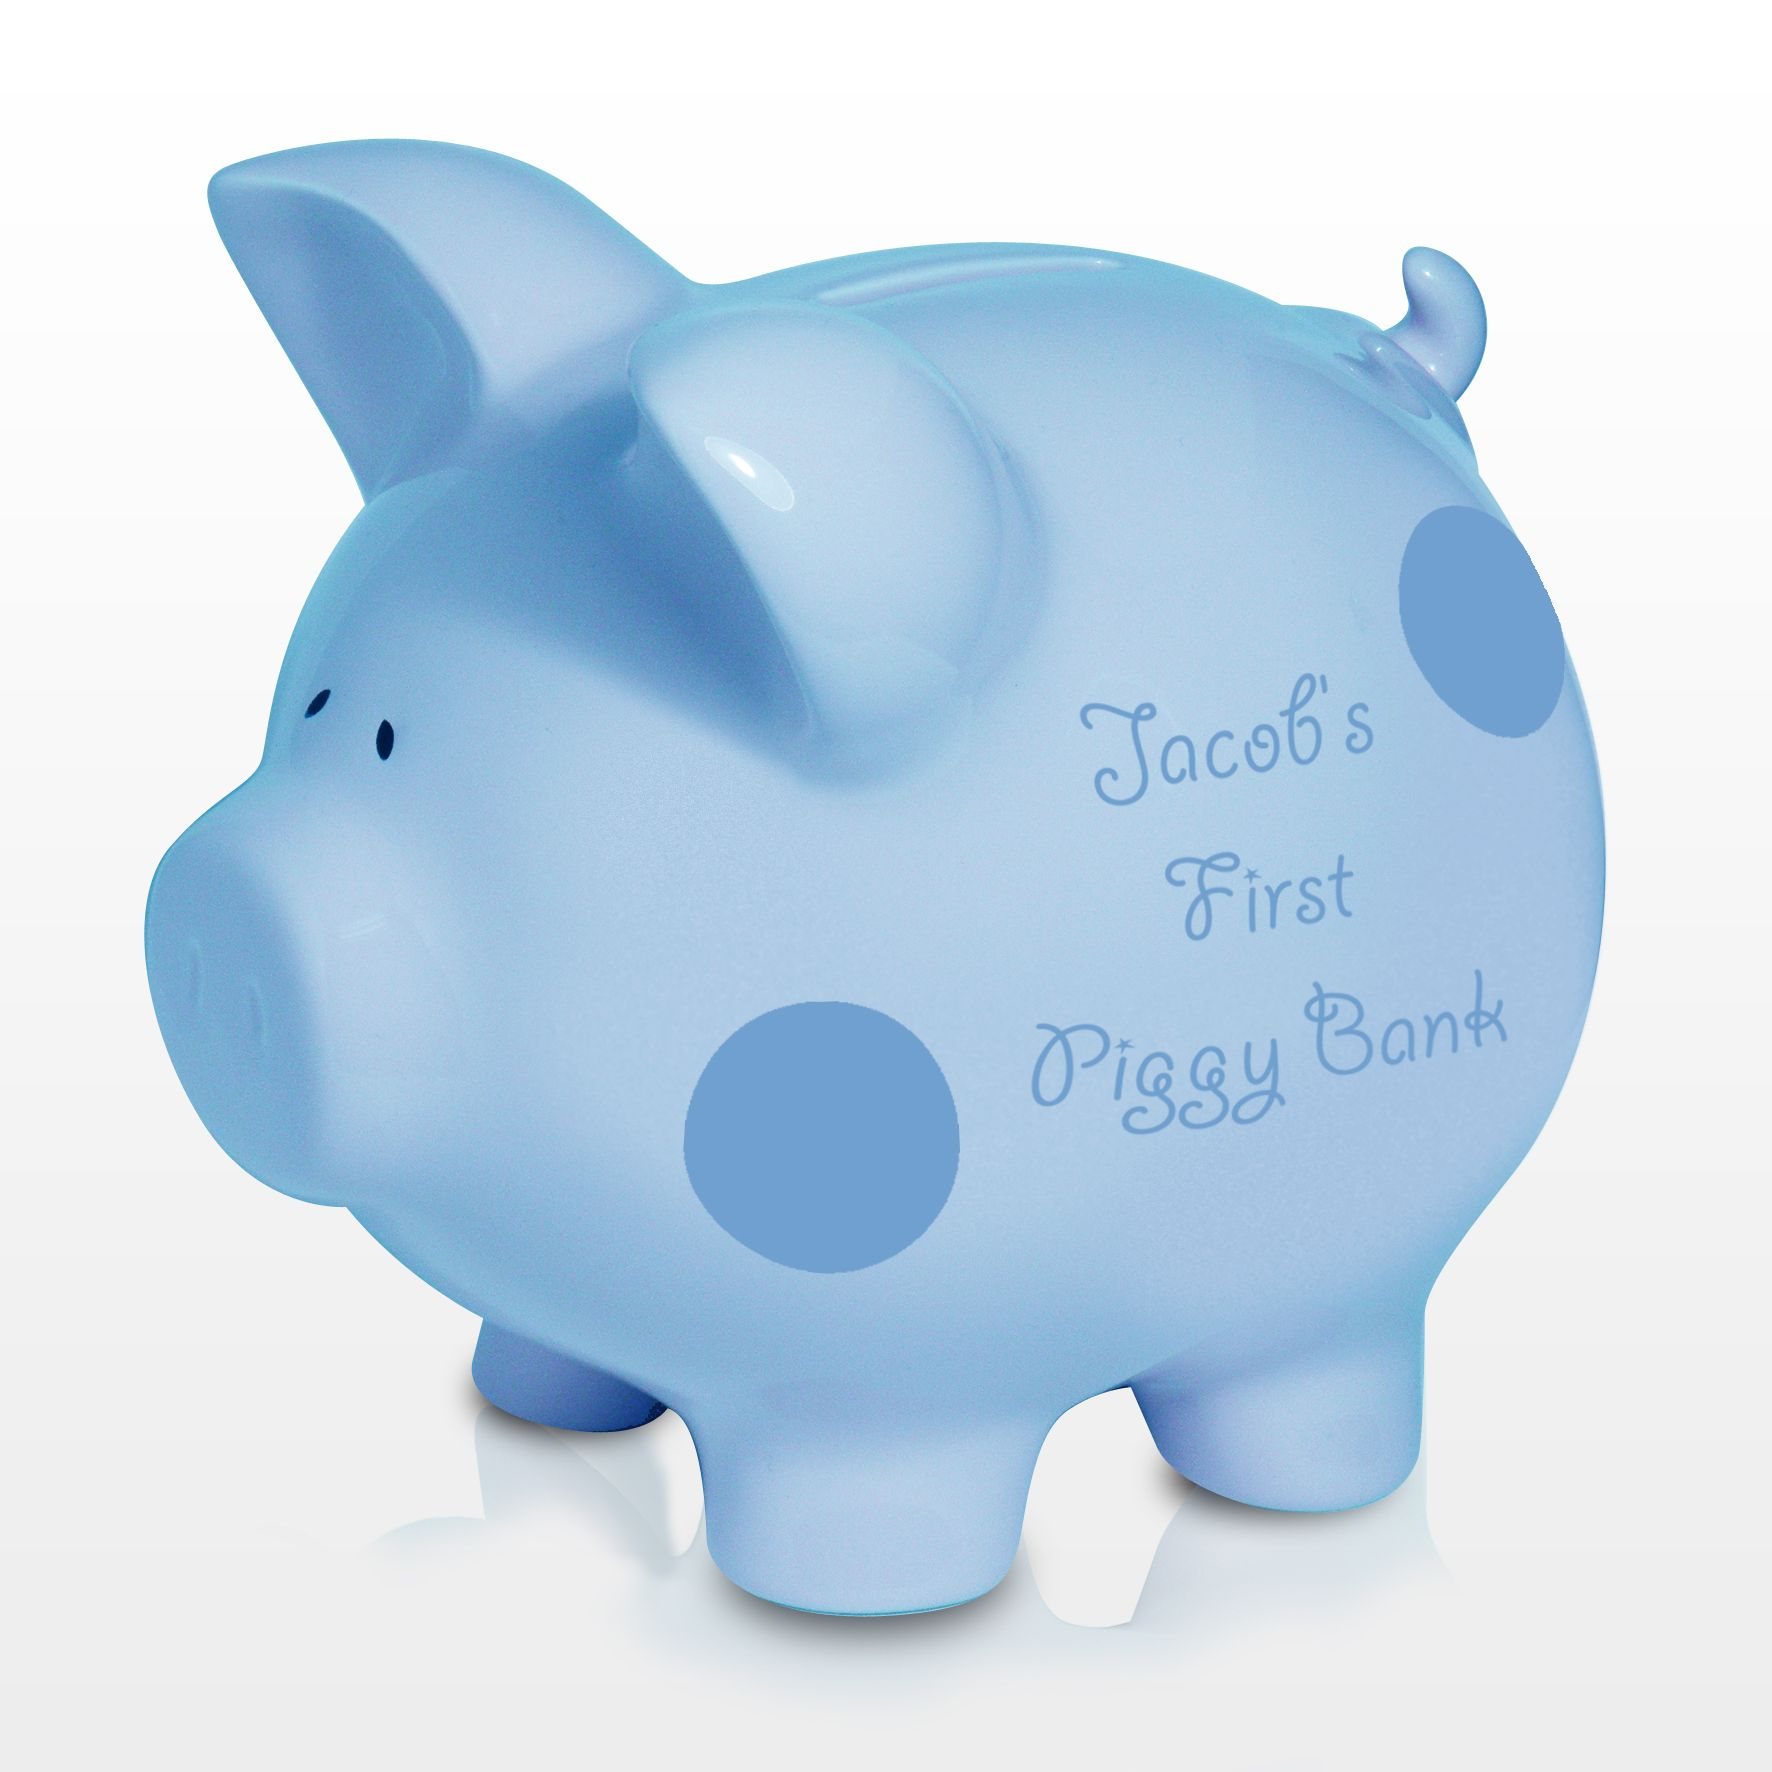 Piggy Bank Idea Piggy Bank Piggy Banks Pinterest Piggy Banks Banks